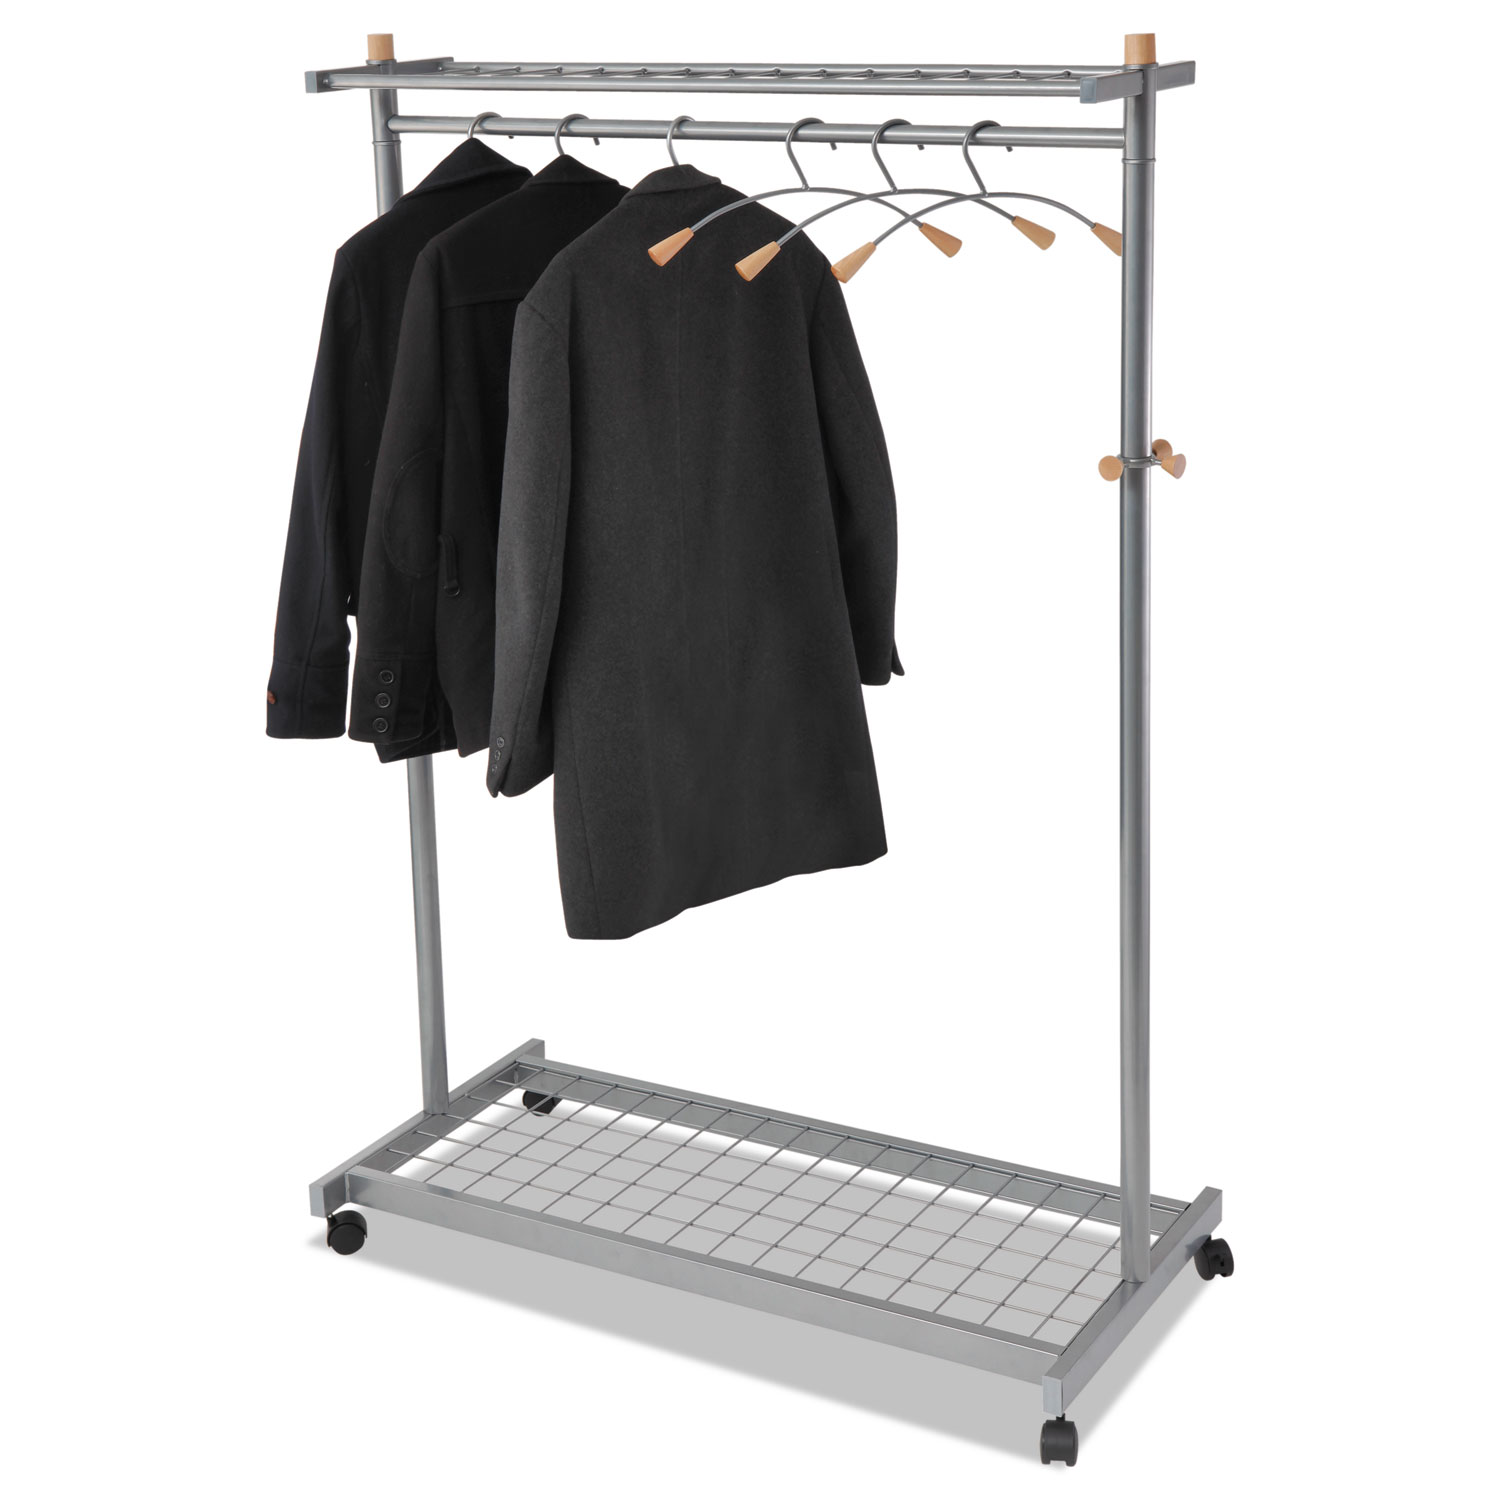 Grid Coat Rack In Office Accessories: Garment Racks By Alba™ ABAPMLUX6